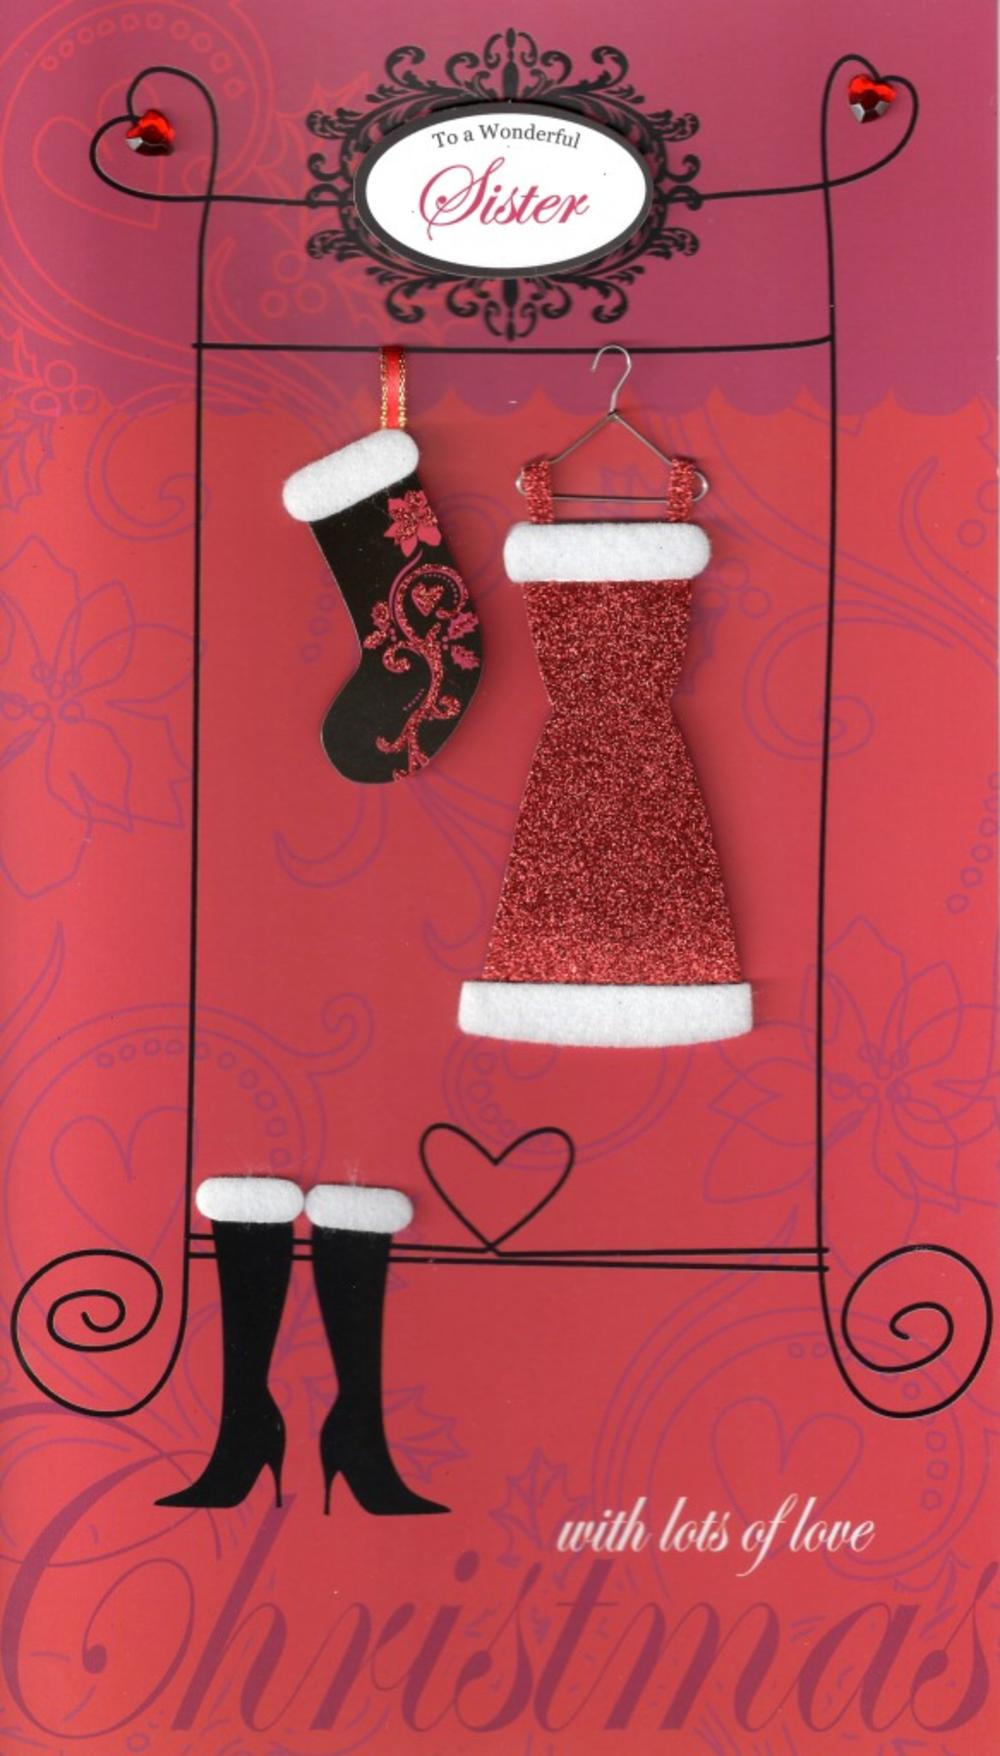 Sister Large Embellished Christmas Card Nice Message